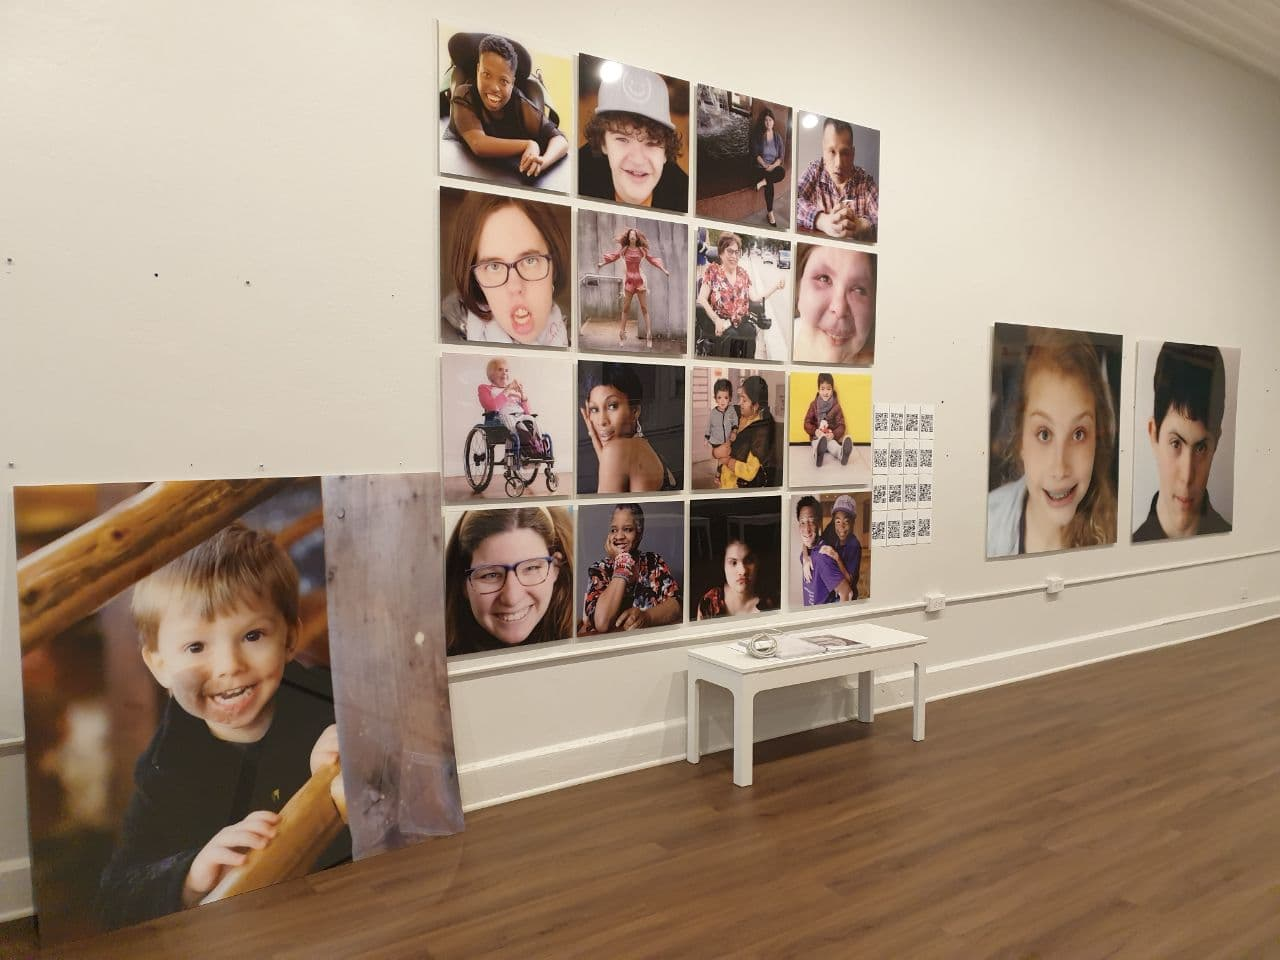 A scene from Positive Exposure exhibition where photographs of individuals with various physical differences are pasted in a grid on a white wall, with a white bench under it. On the wood floor is another large photograph is leaning against the wall.